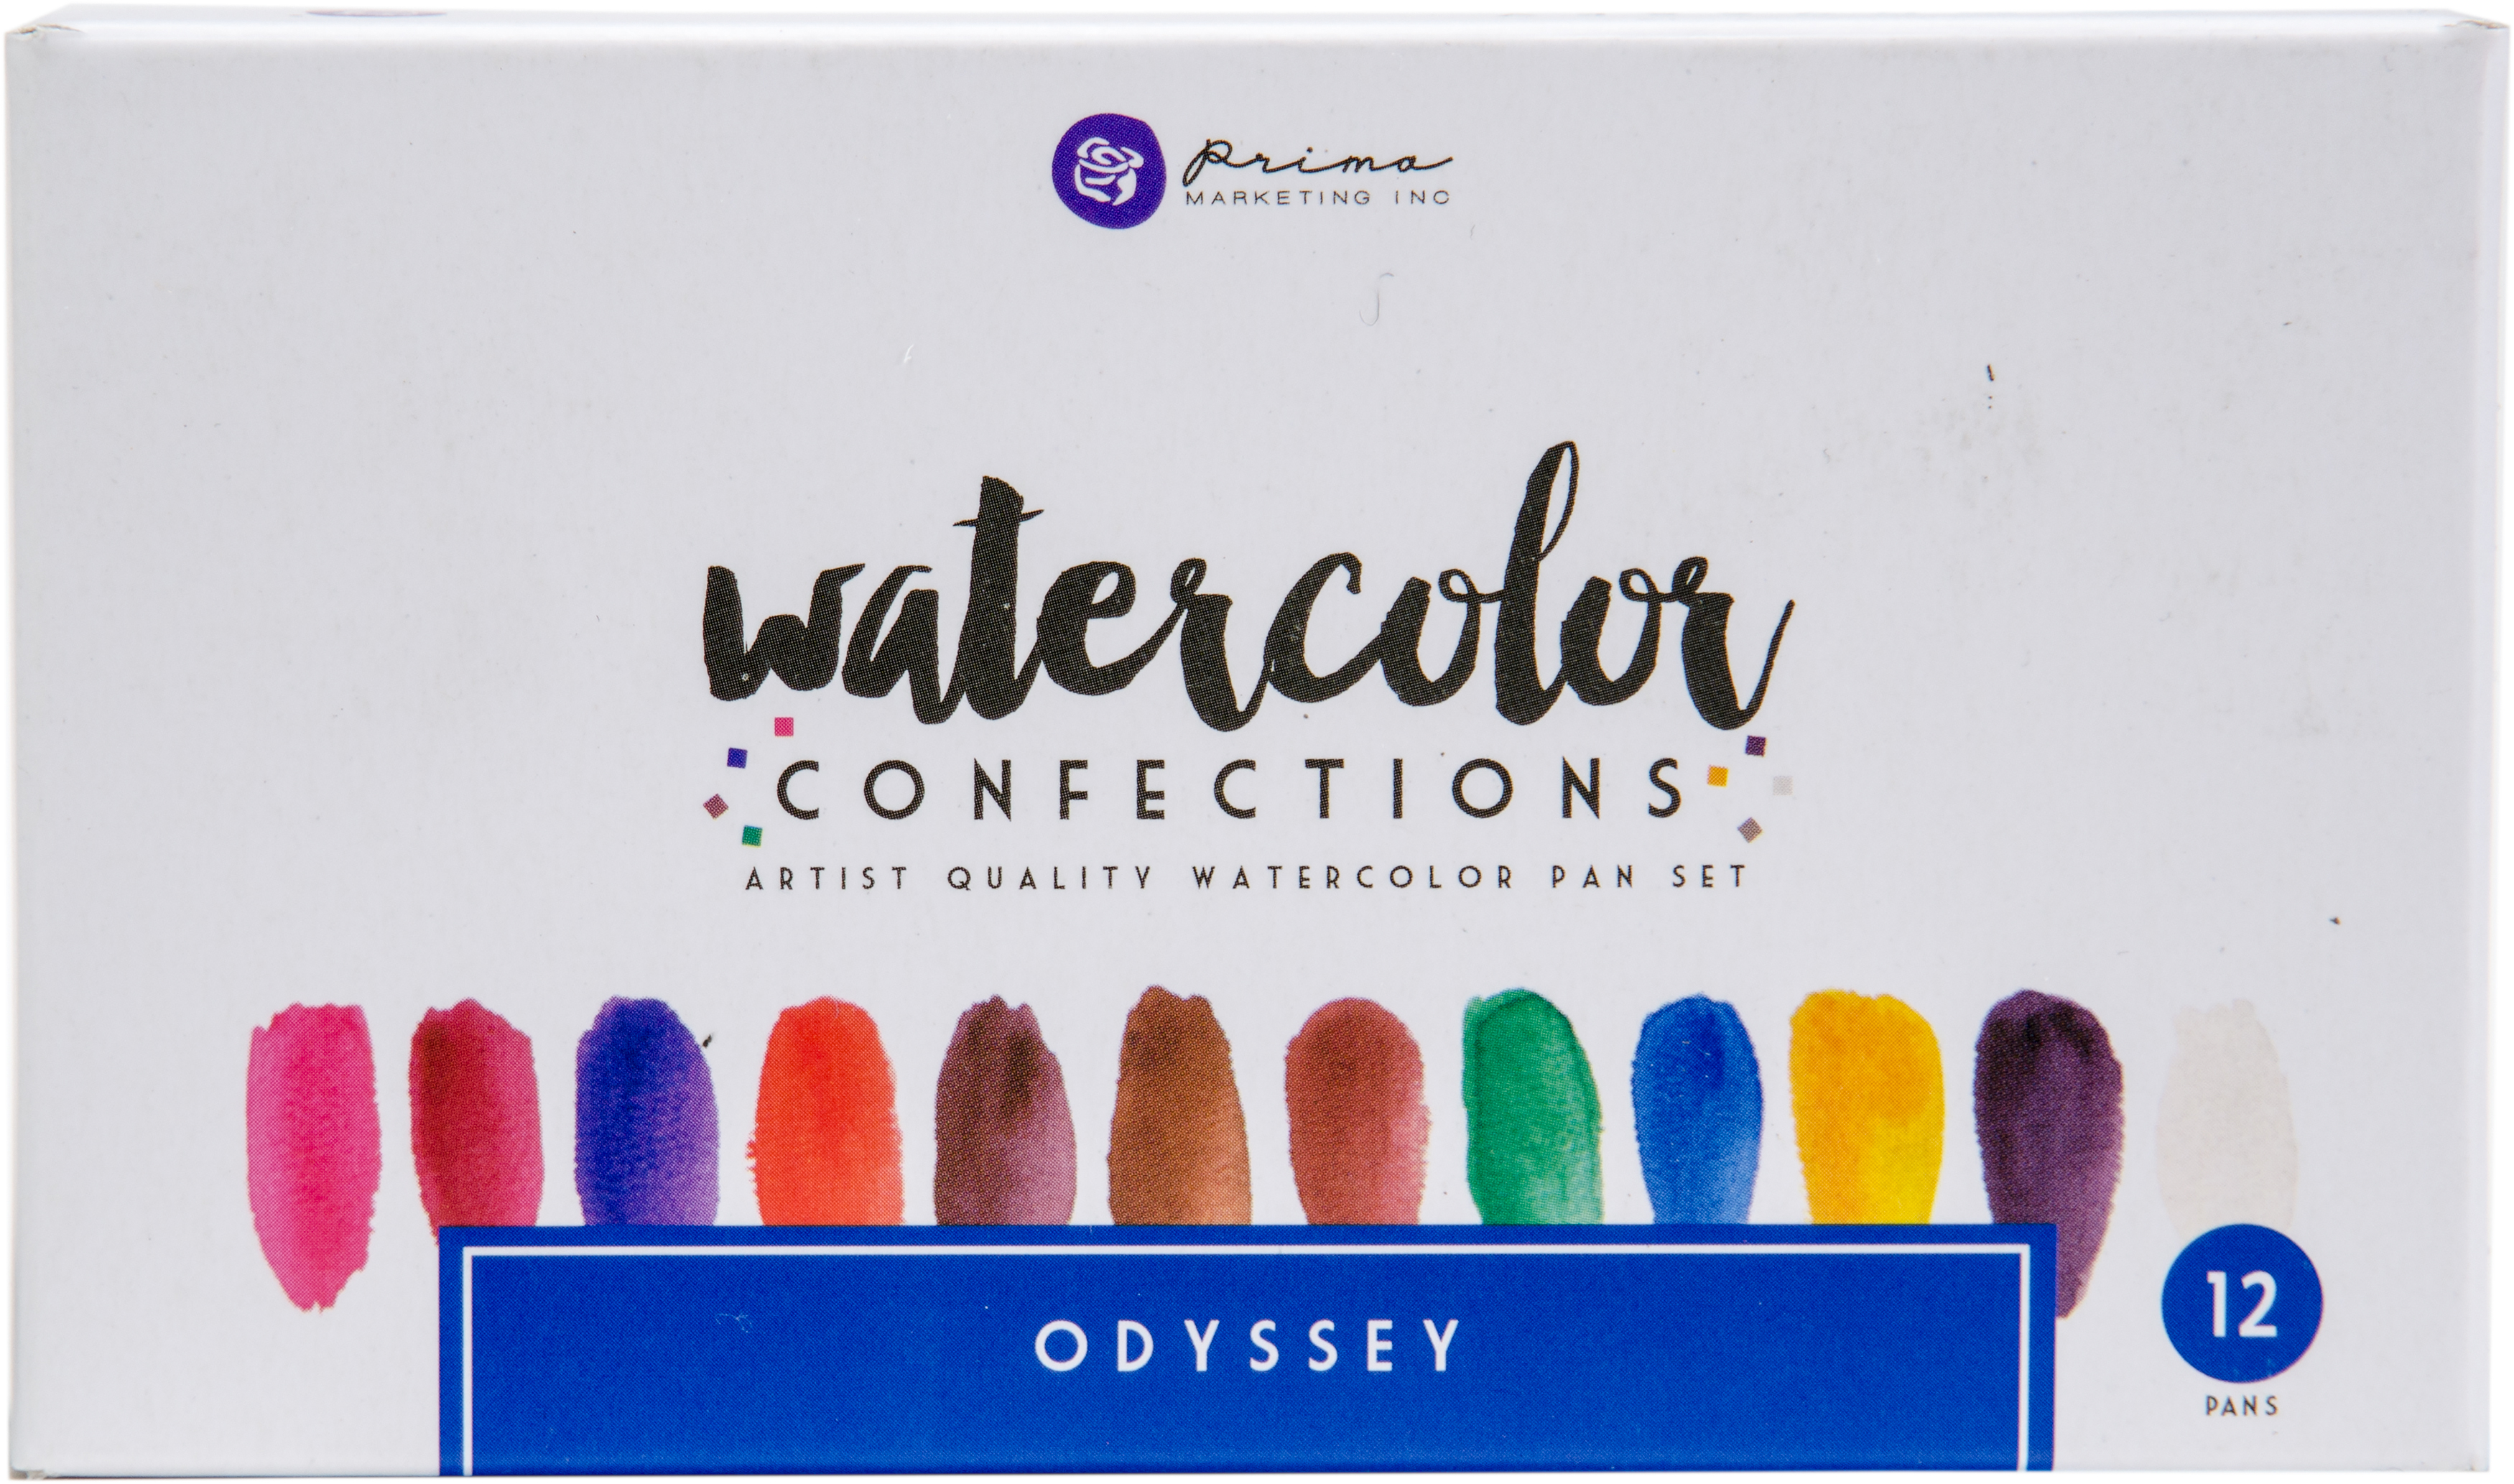 MIXED MEDIA - WATERCOLOR CONFECTIONS ODYSSEY